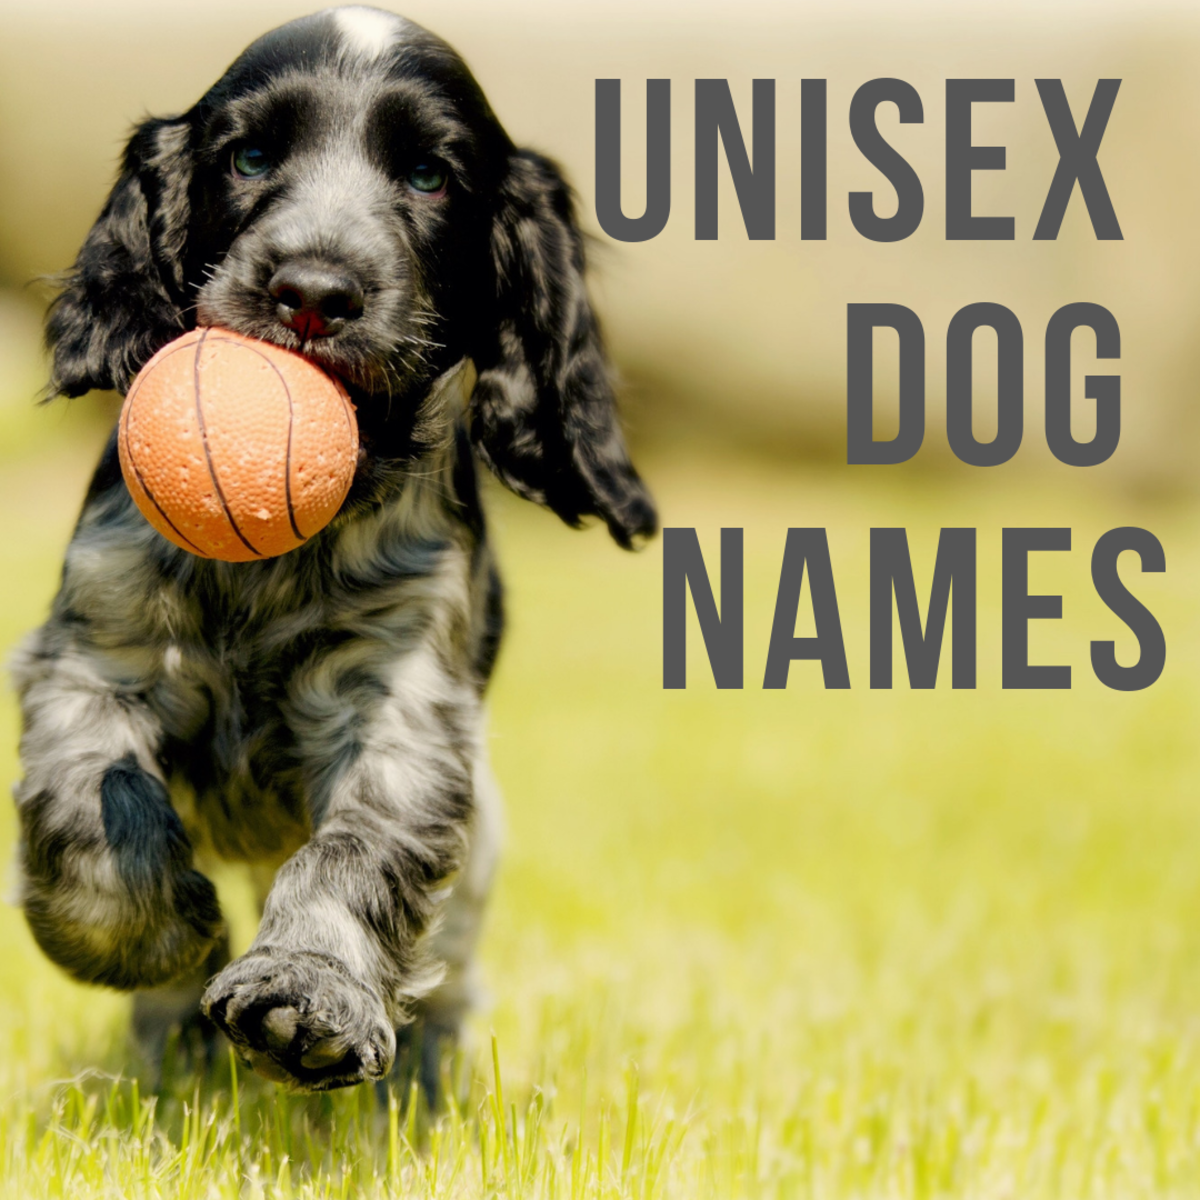 100+ Unisex Dogs Names That Work For Both Male And Female